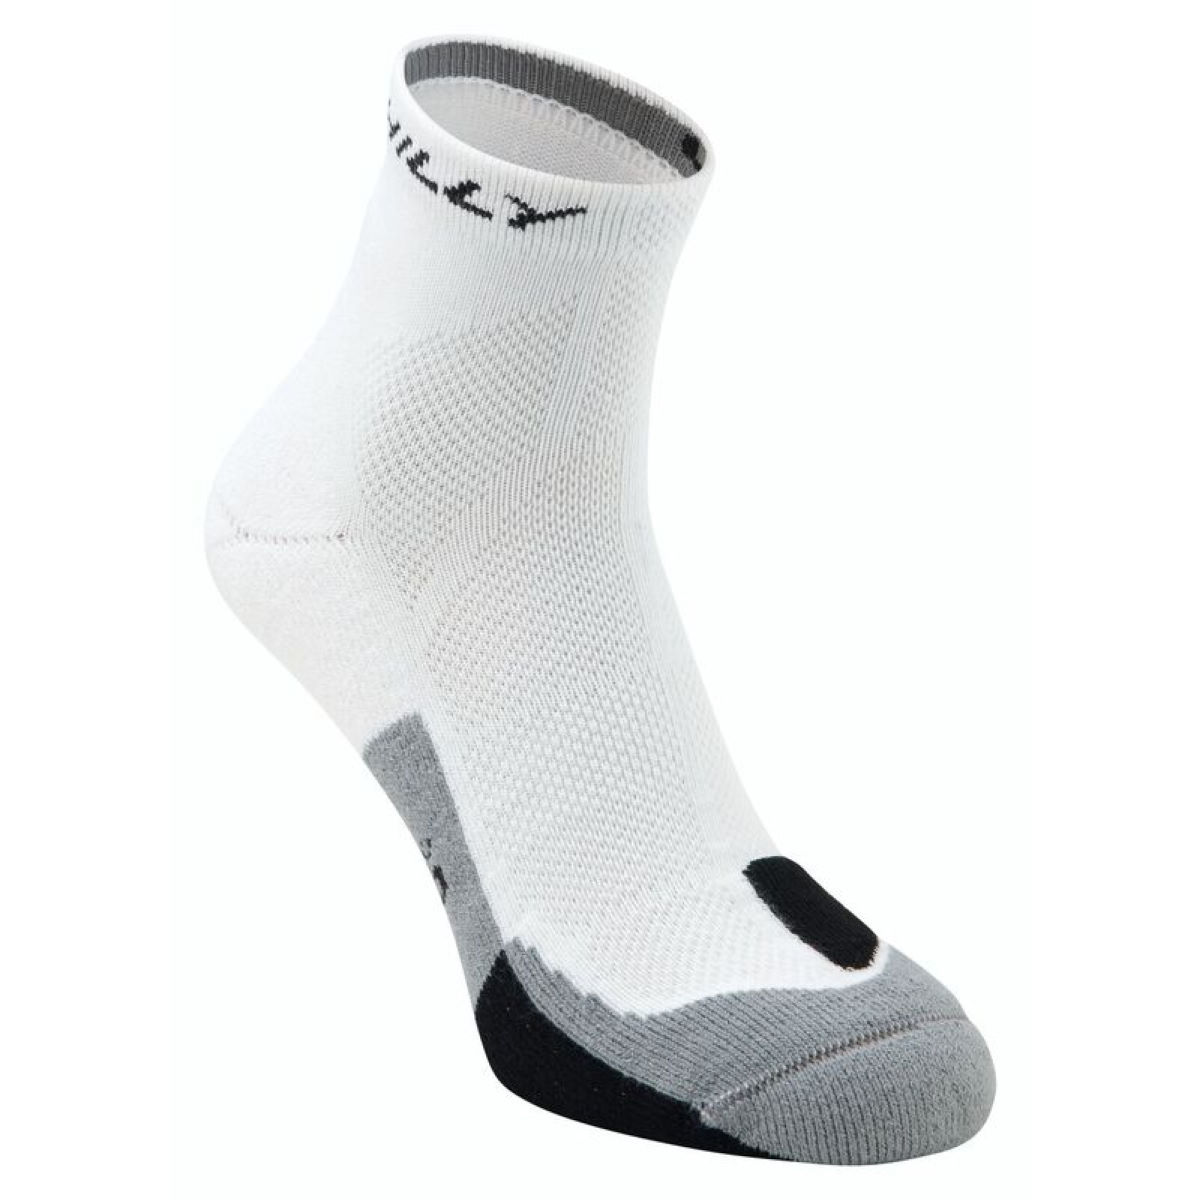 Image of Chaussettes Hilly Cushion - S White/Black/Grey | Chaussettes